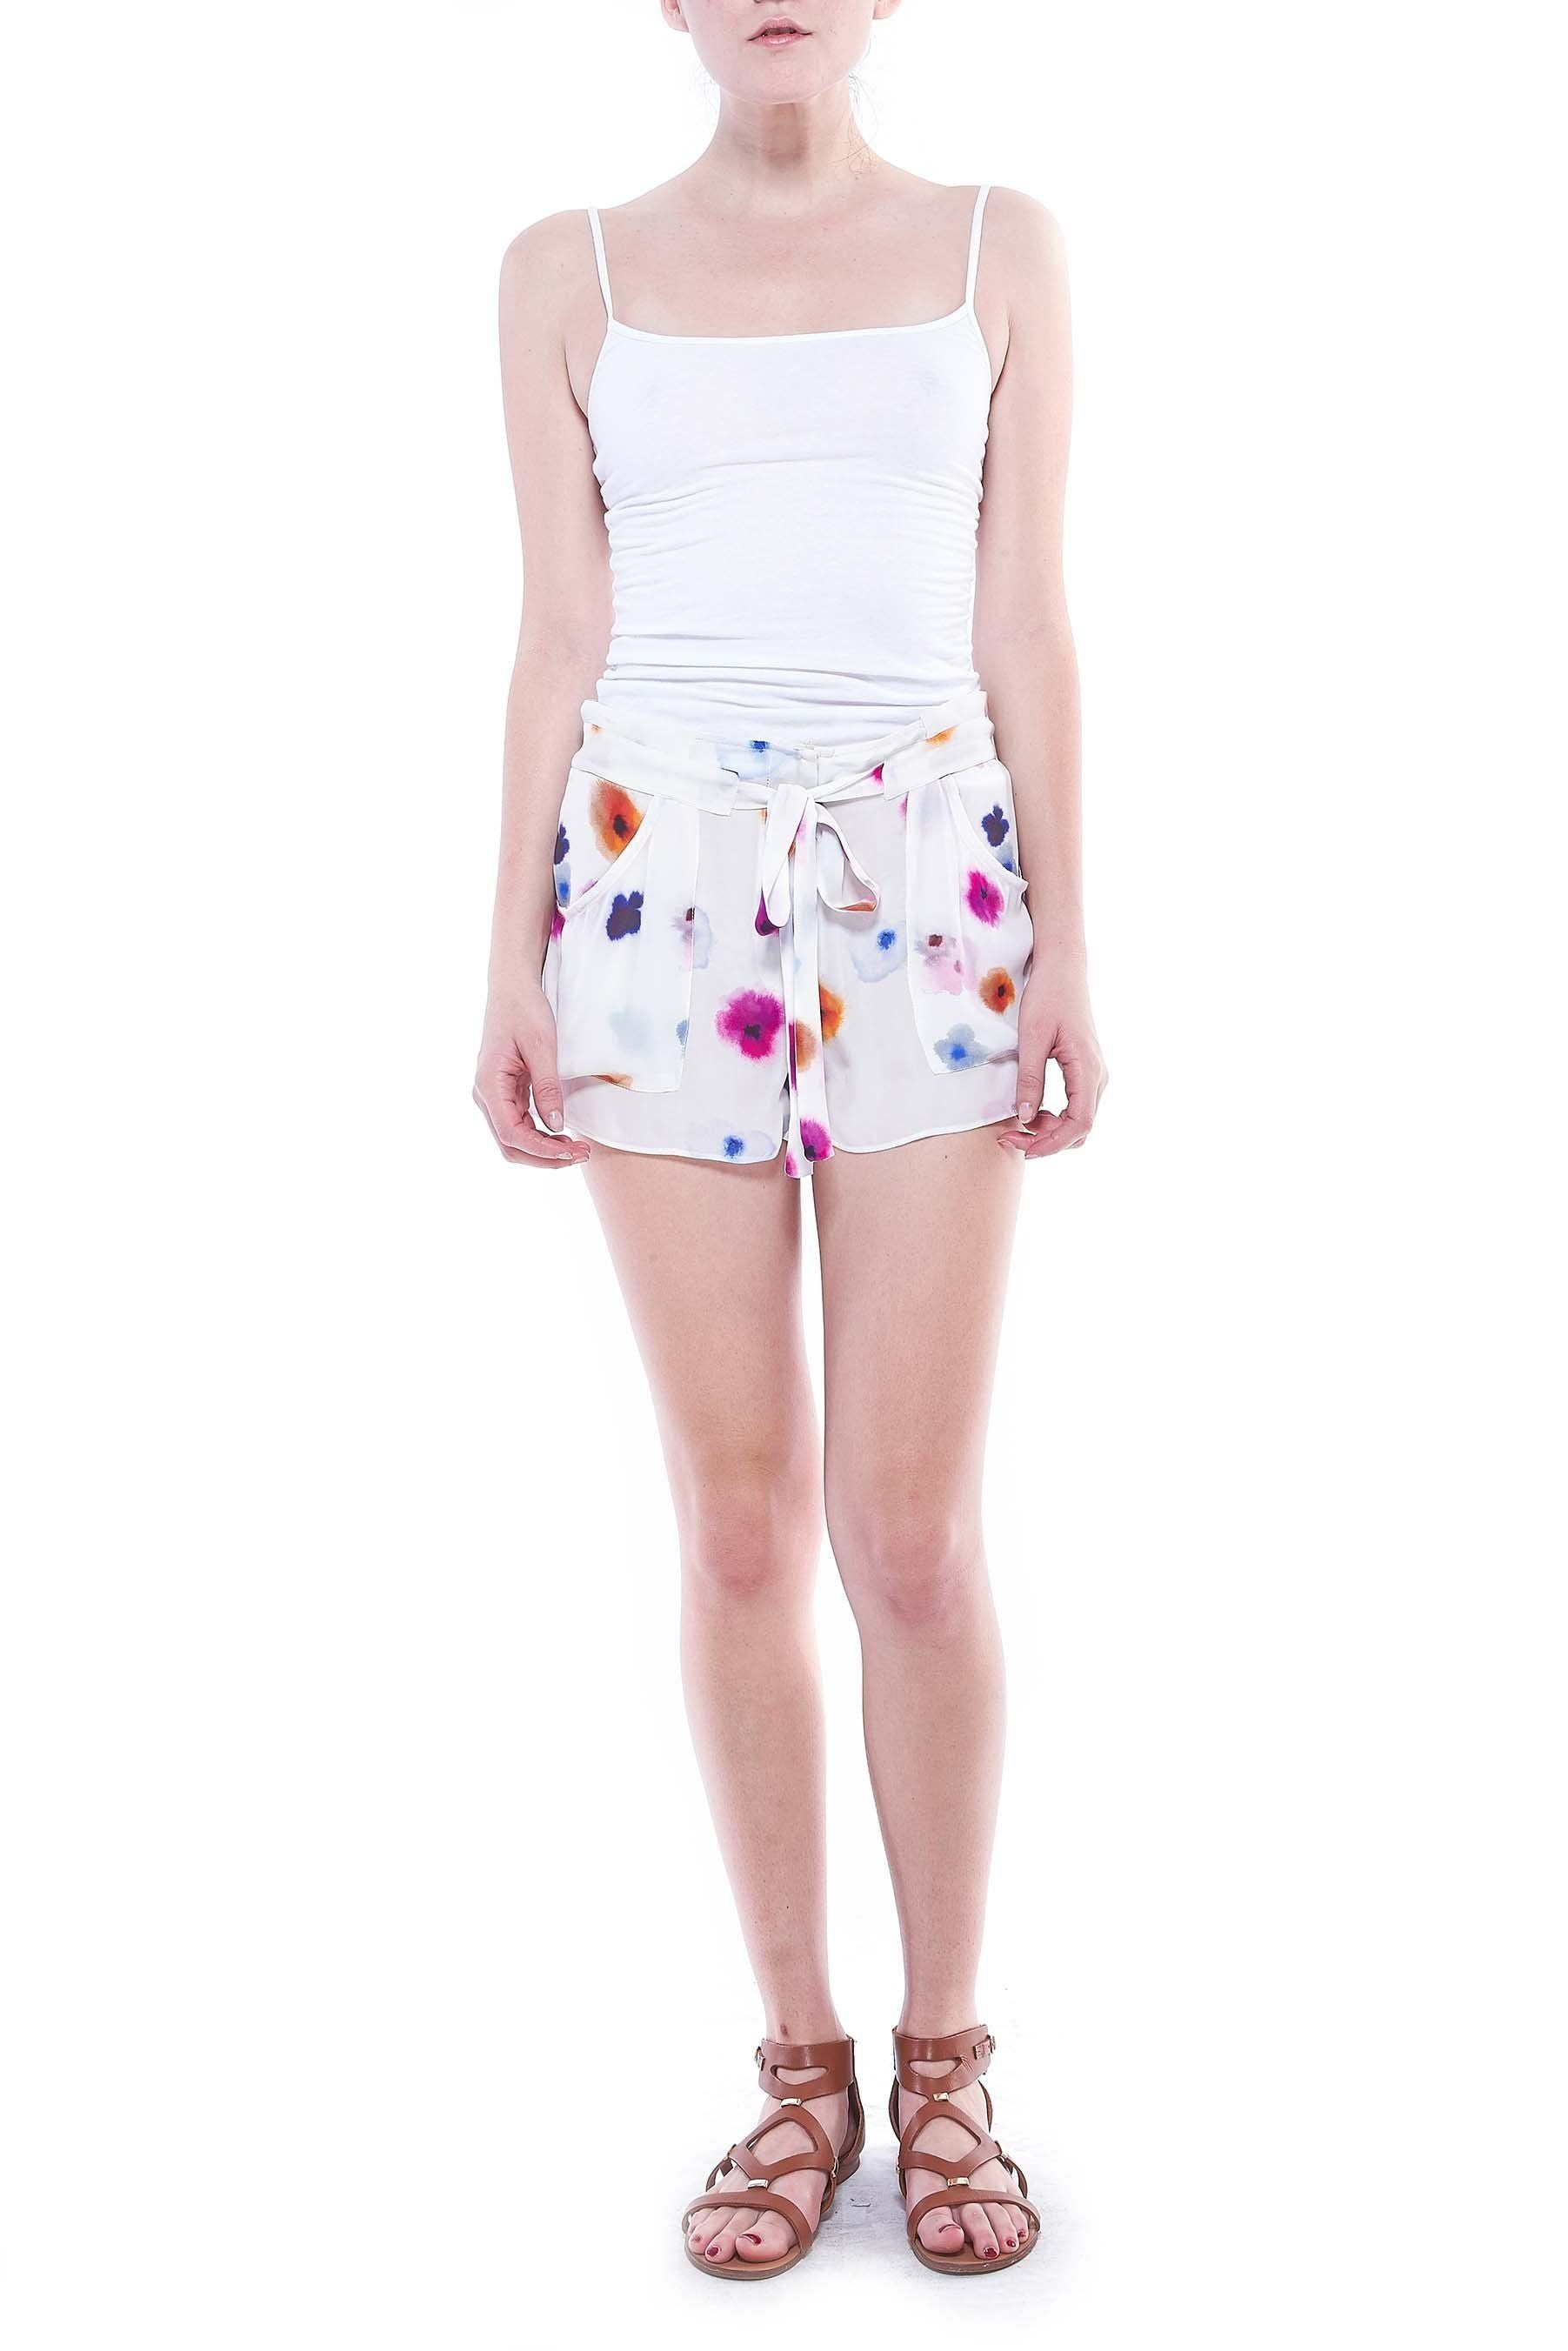 P369 HAZEL SHORTS WITH POCKETS POSEY PRINT